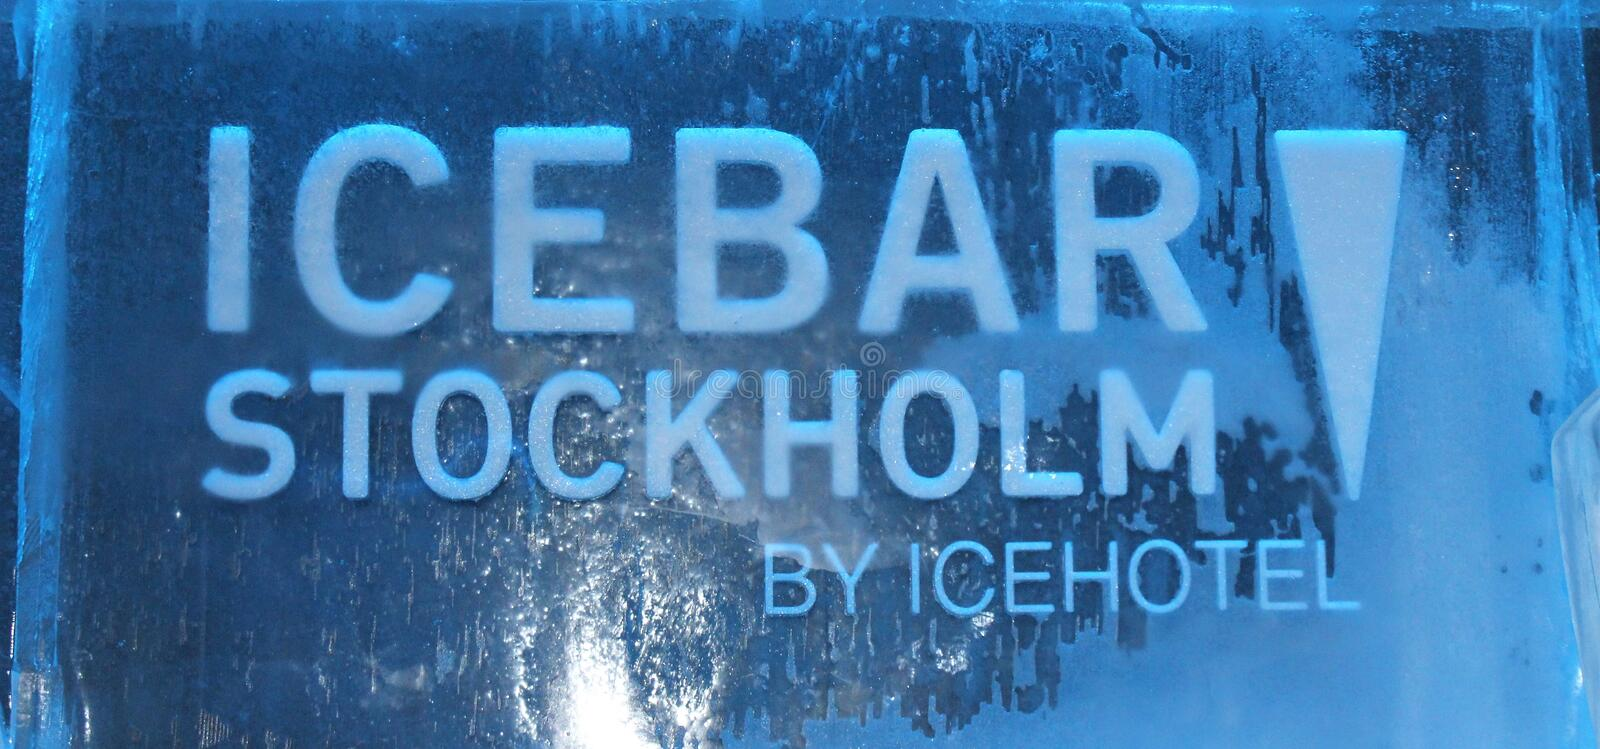 At ICEBAR by ICEHOTEL Stockholm, Sweden. ICEBAR by ICEHOTEL Stockholm was built in 2002 as the world`s first permanent ice bar. Every year, interior and design stock photo